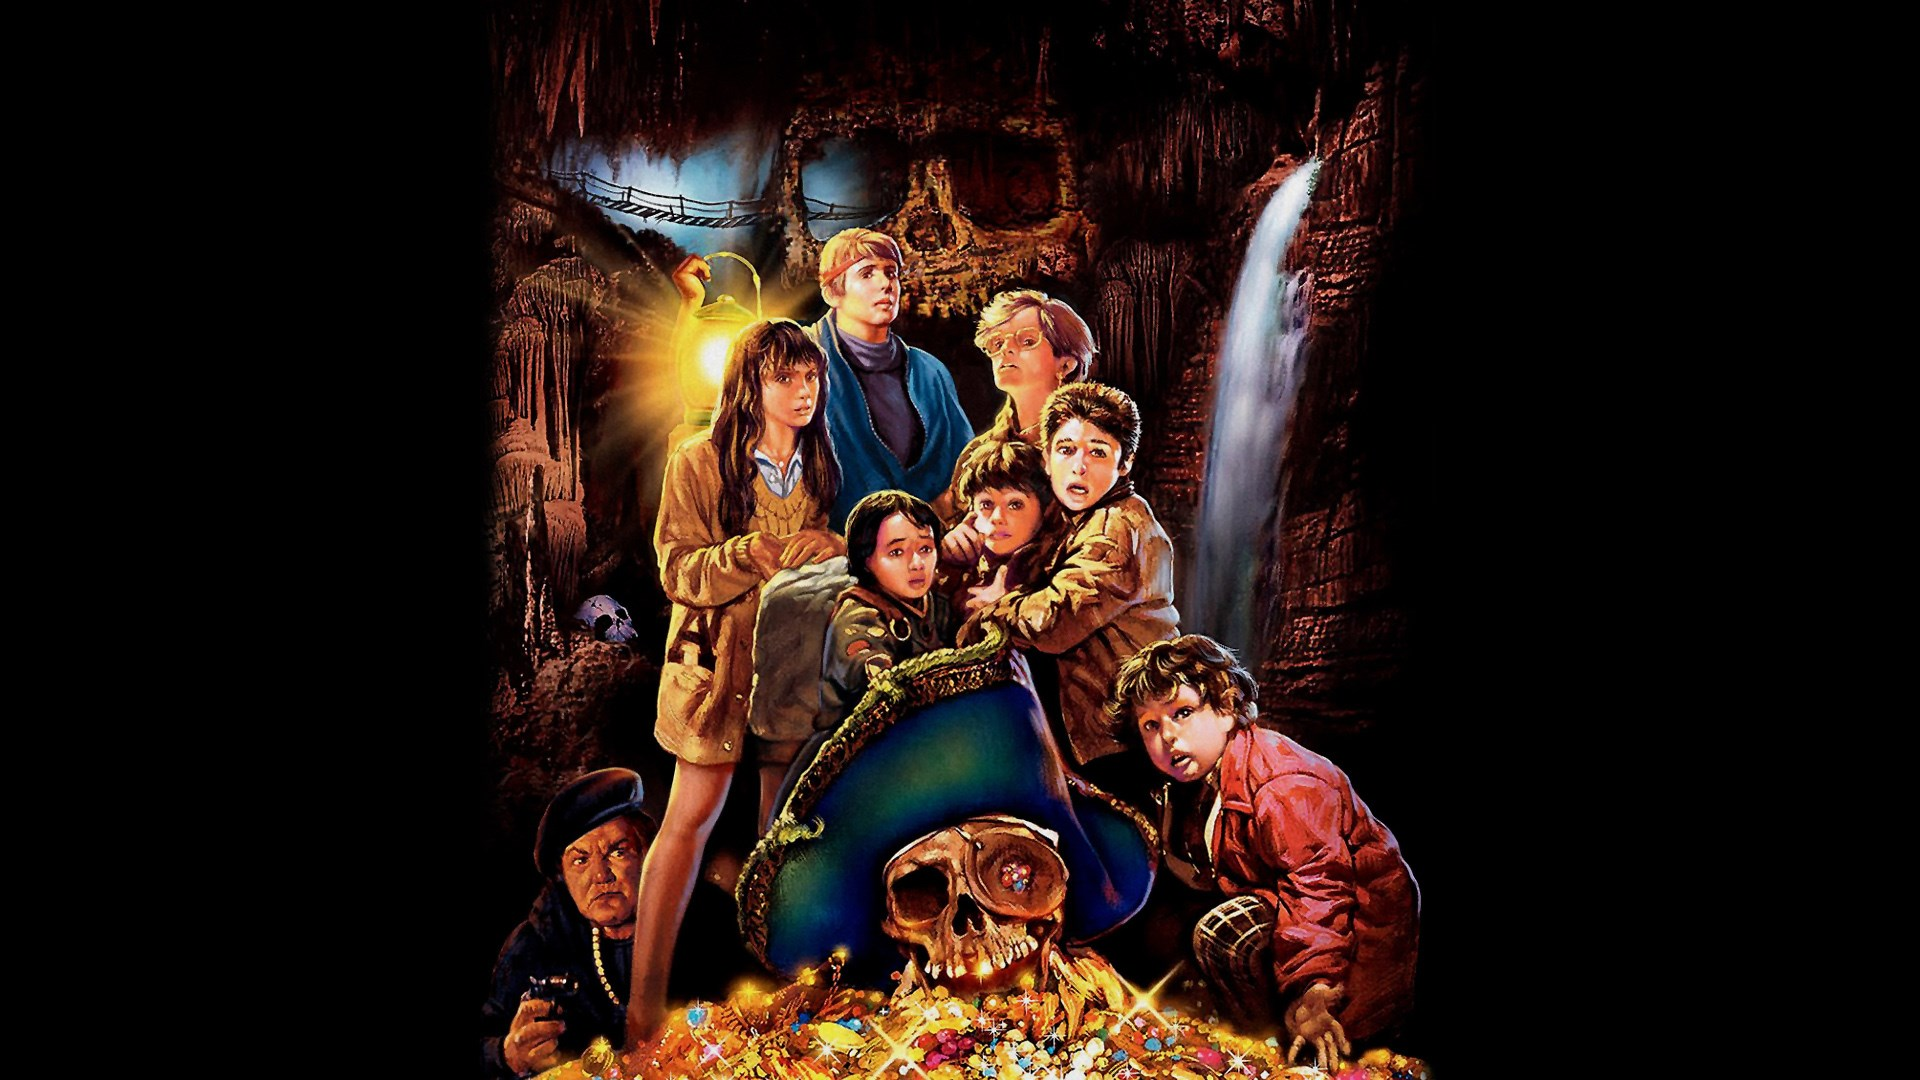 1920x1080-free-and-screensavers-for-the-goonies-wallpaper-wp360809